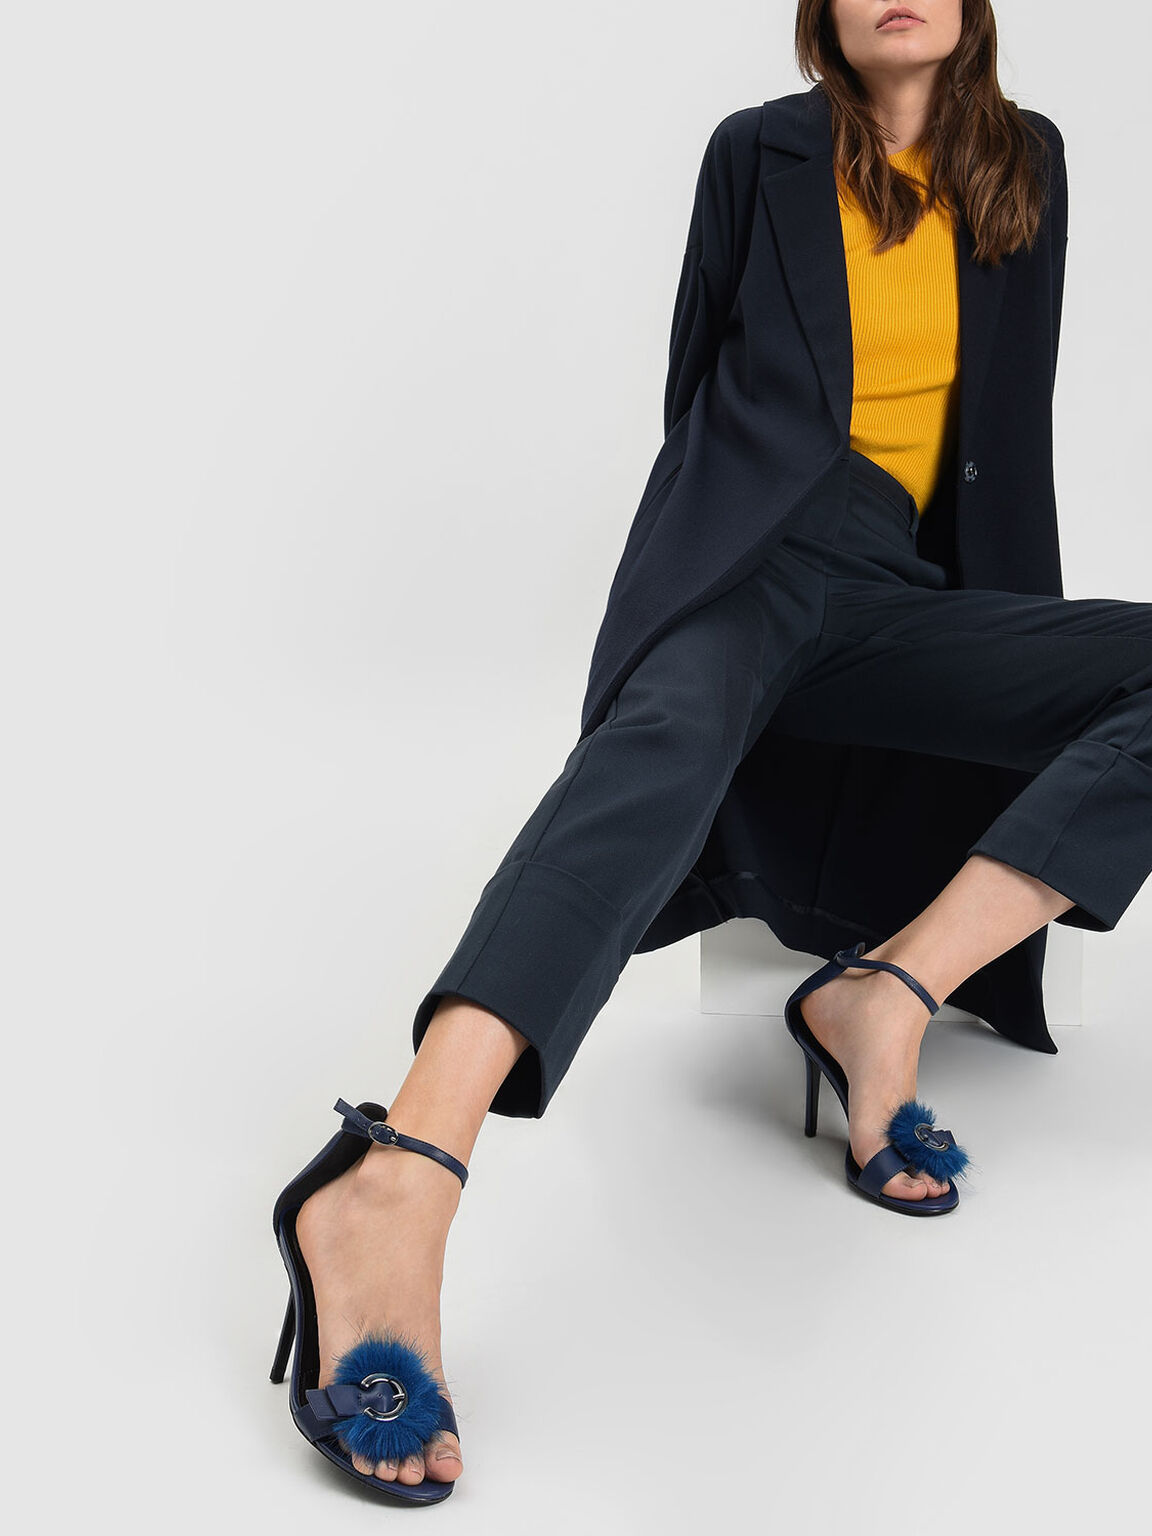 Furry Buckle Leather Heeled Sandals, Dark Blue, hi-res